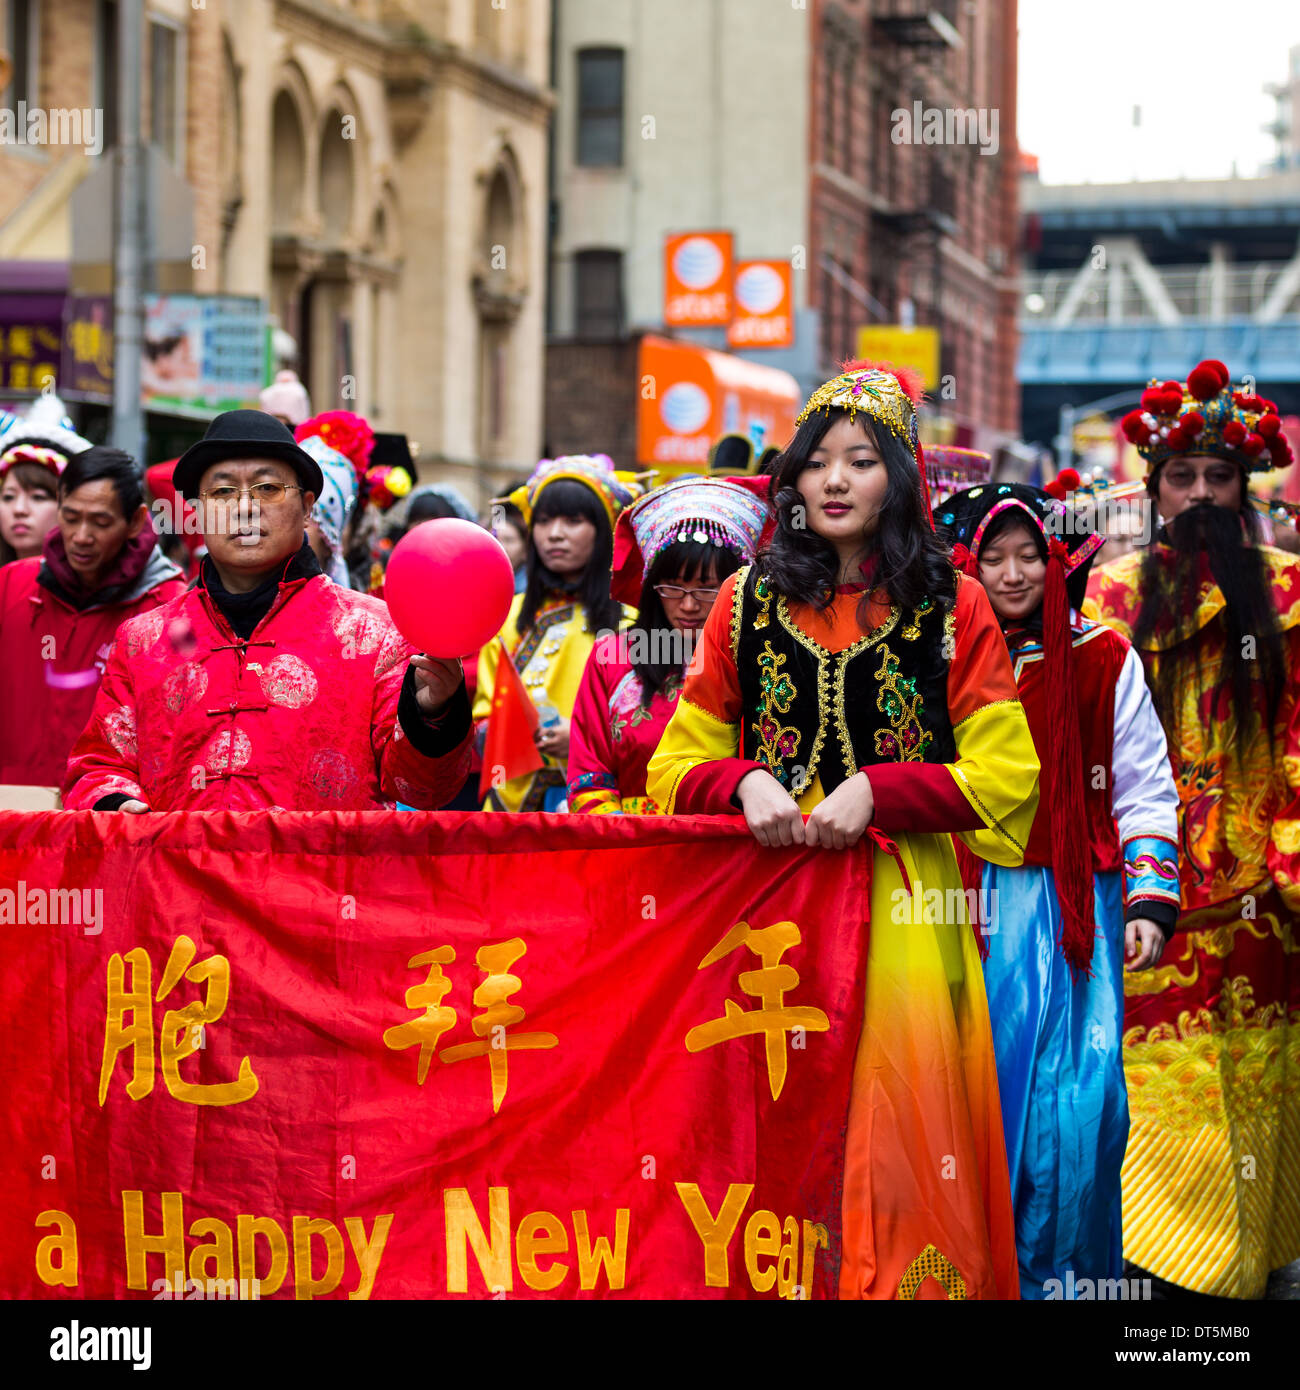 Chinese Americans dressed in traditional costumes parade at the Lunar New Year Festival in Chinatown. - Stock Image